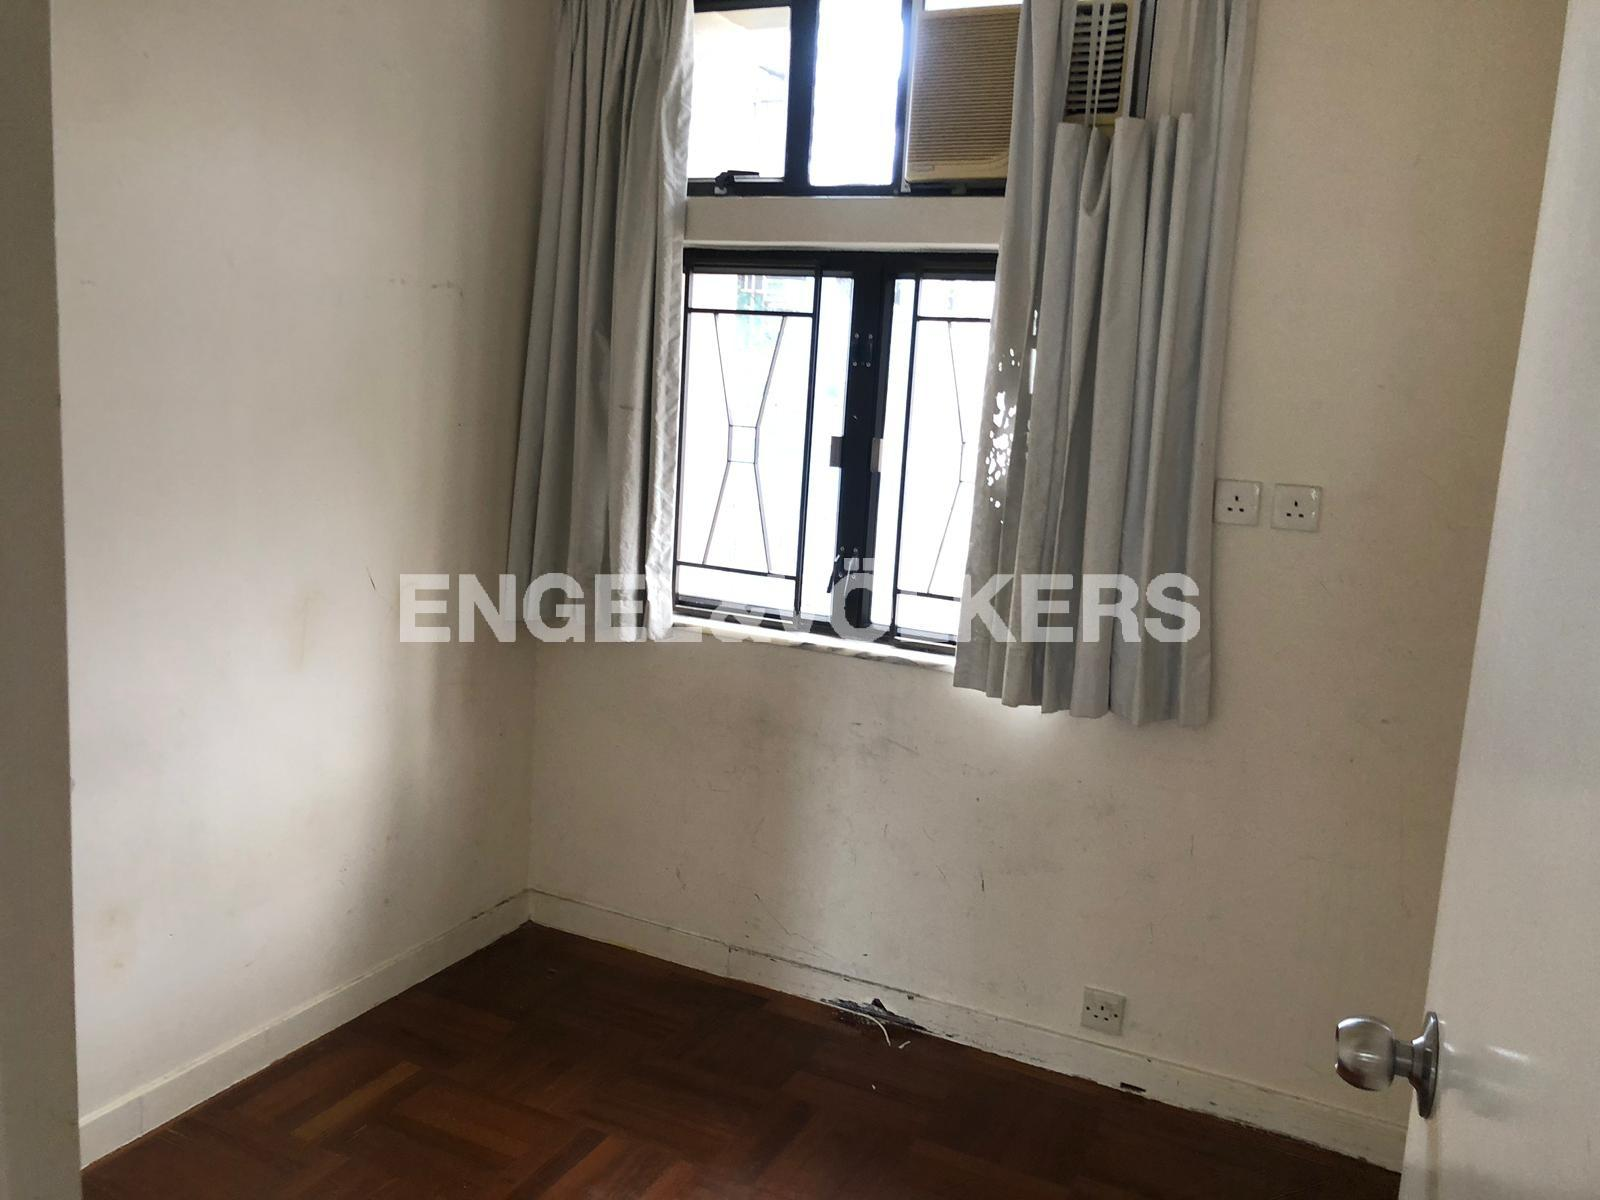 Apartment in Happy Valley/Mid Level East - King Inn Mansion 景怡大廈